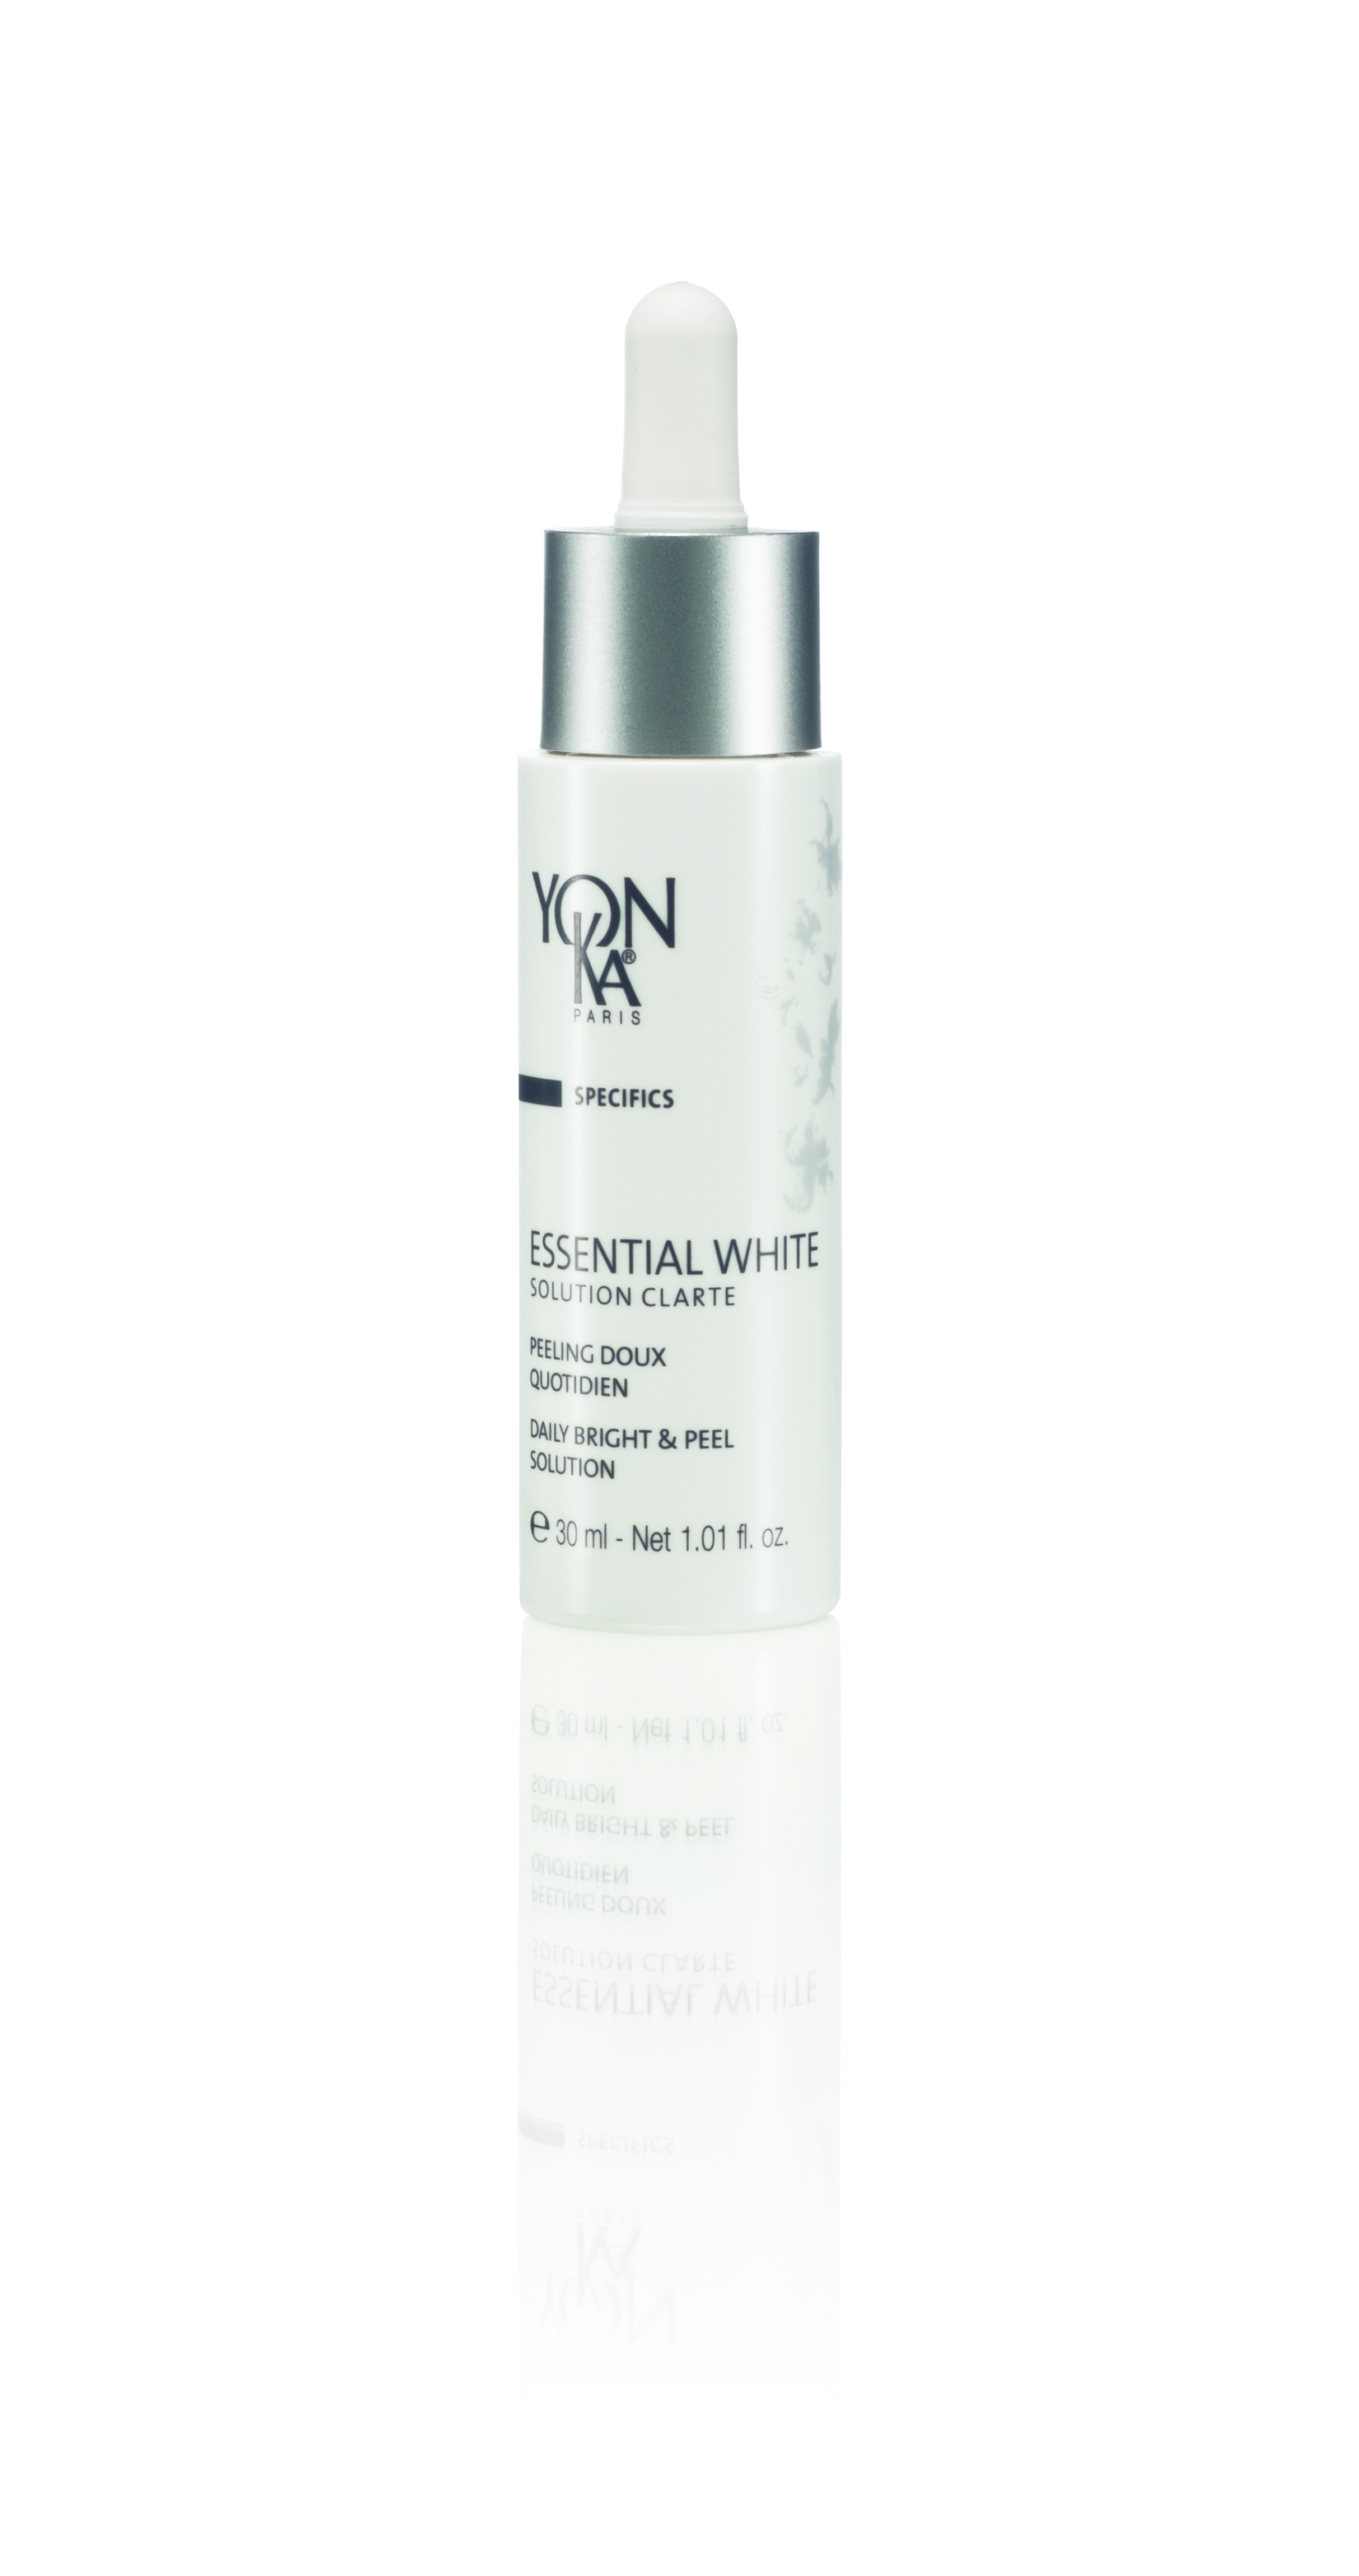 Essential White Solution Clarte (30ml)